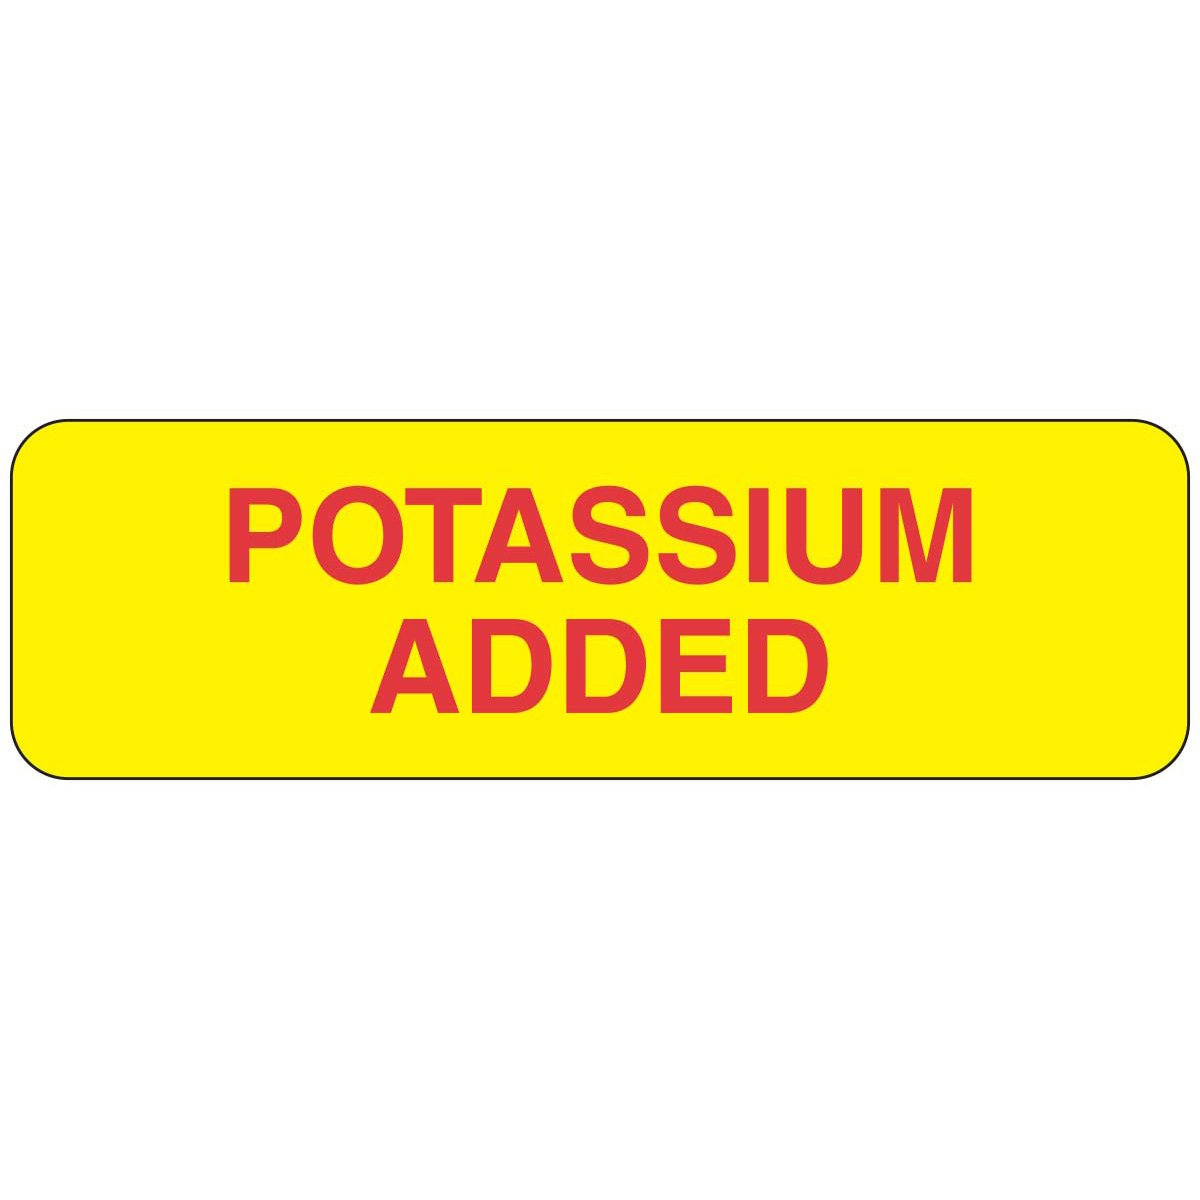 PDC Healthcare 59705846 Paper Label, Yellow Label with Black Text, ''Potassium Added'', 2.875'' Width x 0.875'' Length (Roll of 1000)